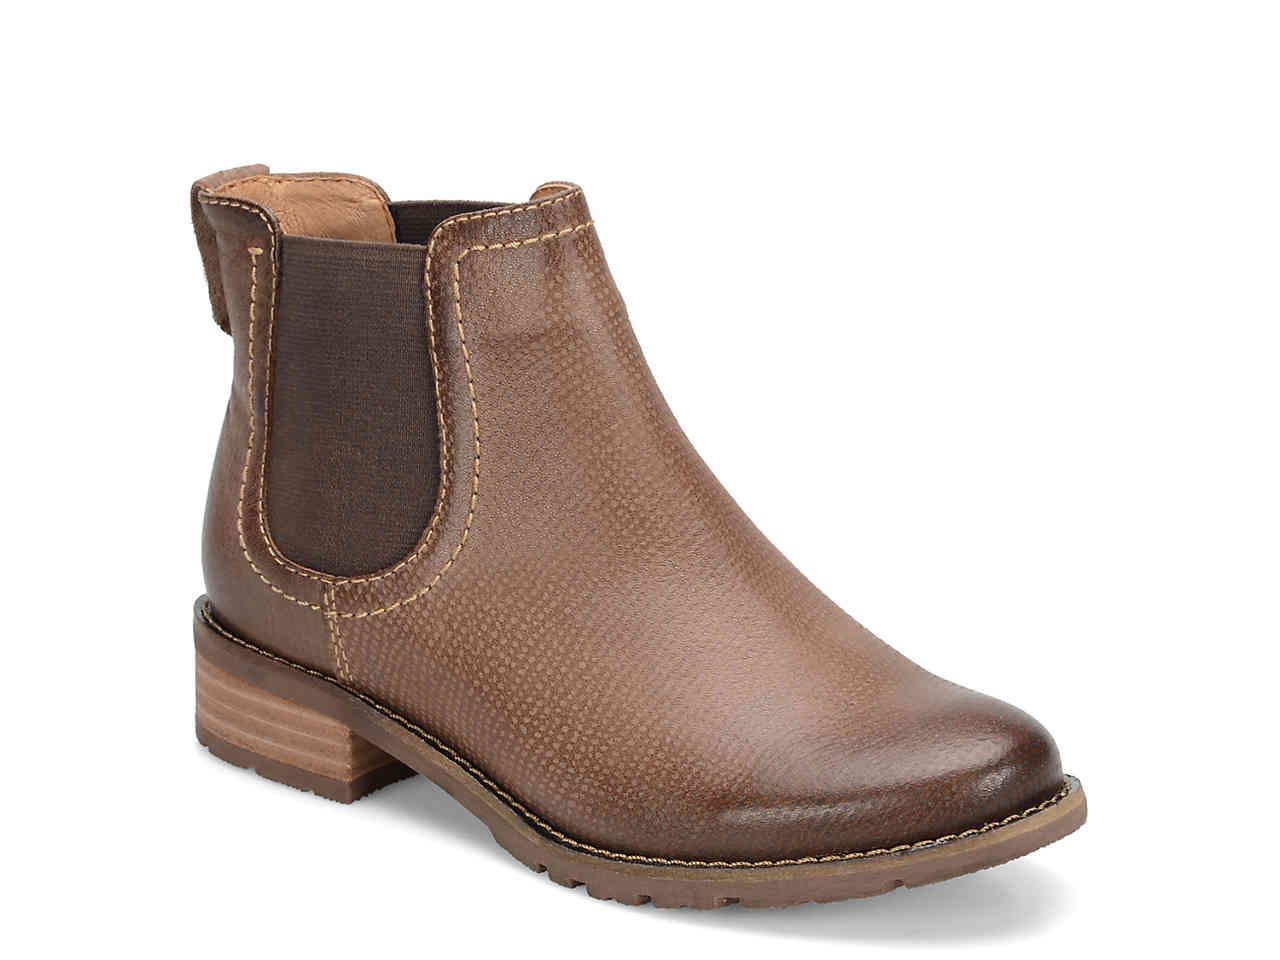 Selby Chelsea Boot   Shoes   Boots, Shoes, Leather booties f727663c90